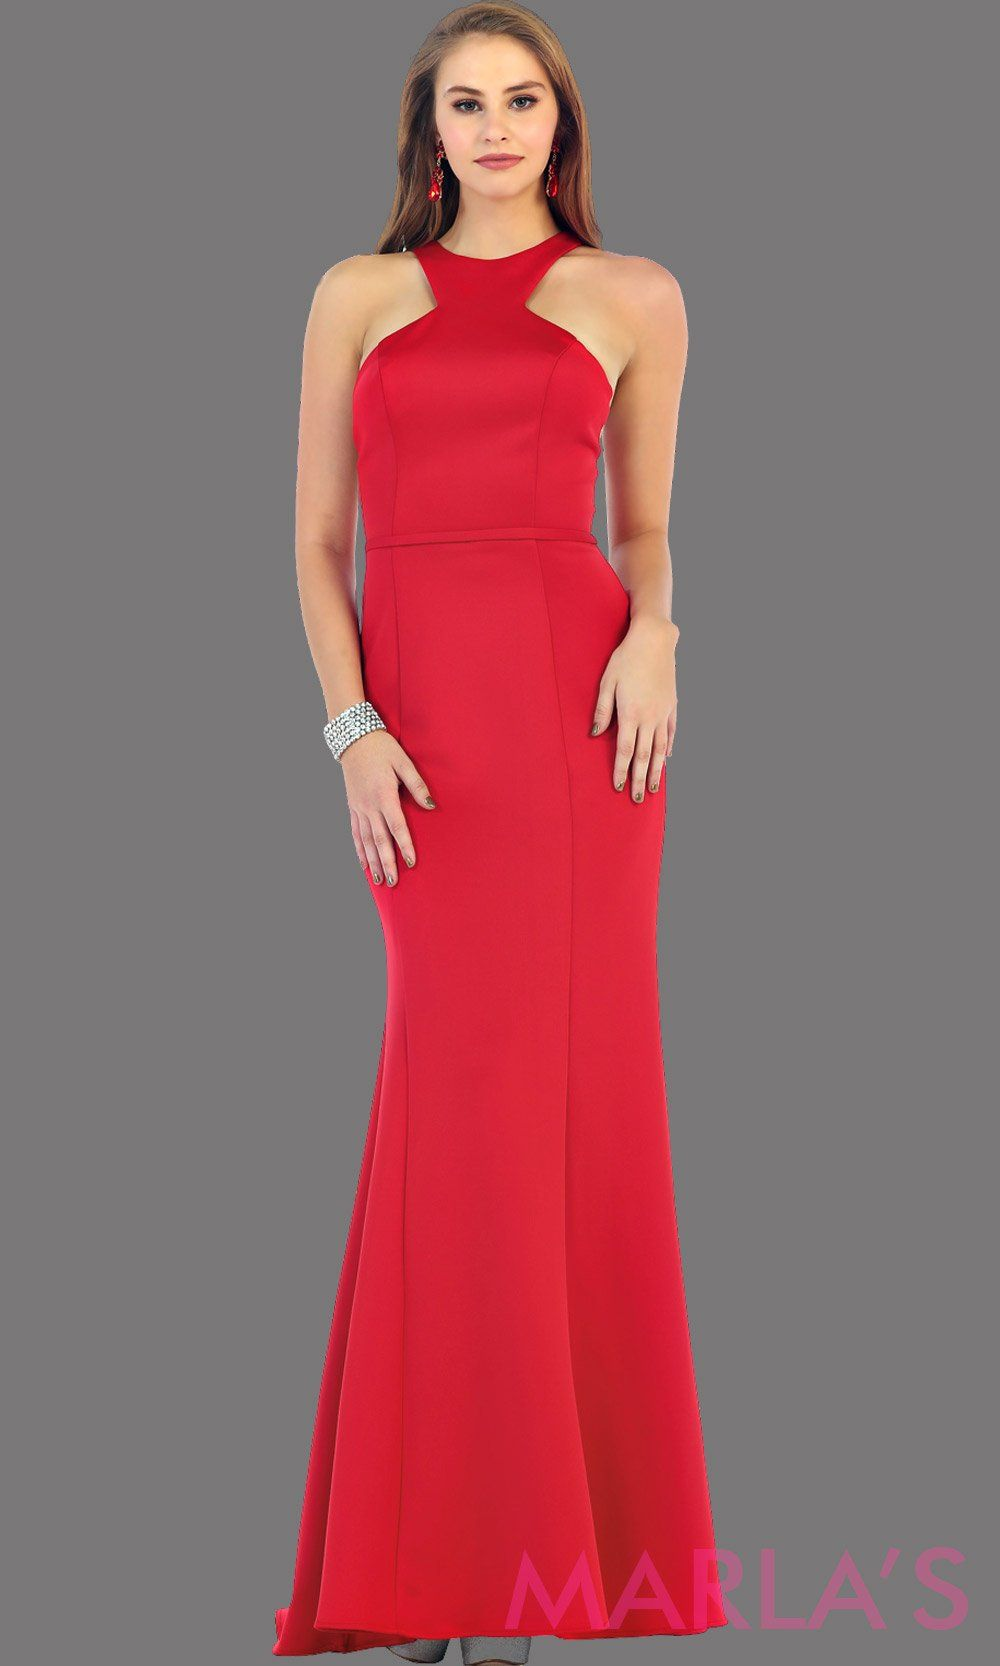 Fitted High Neck Long Blush Dress Marlasfashions 1430